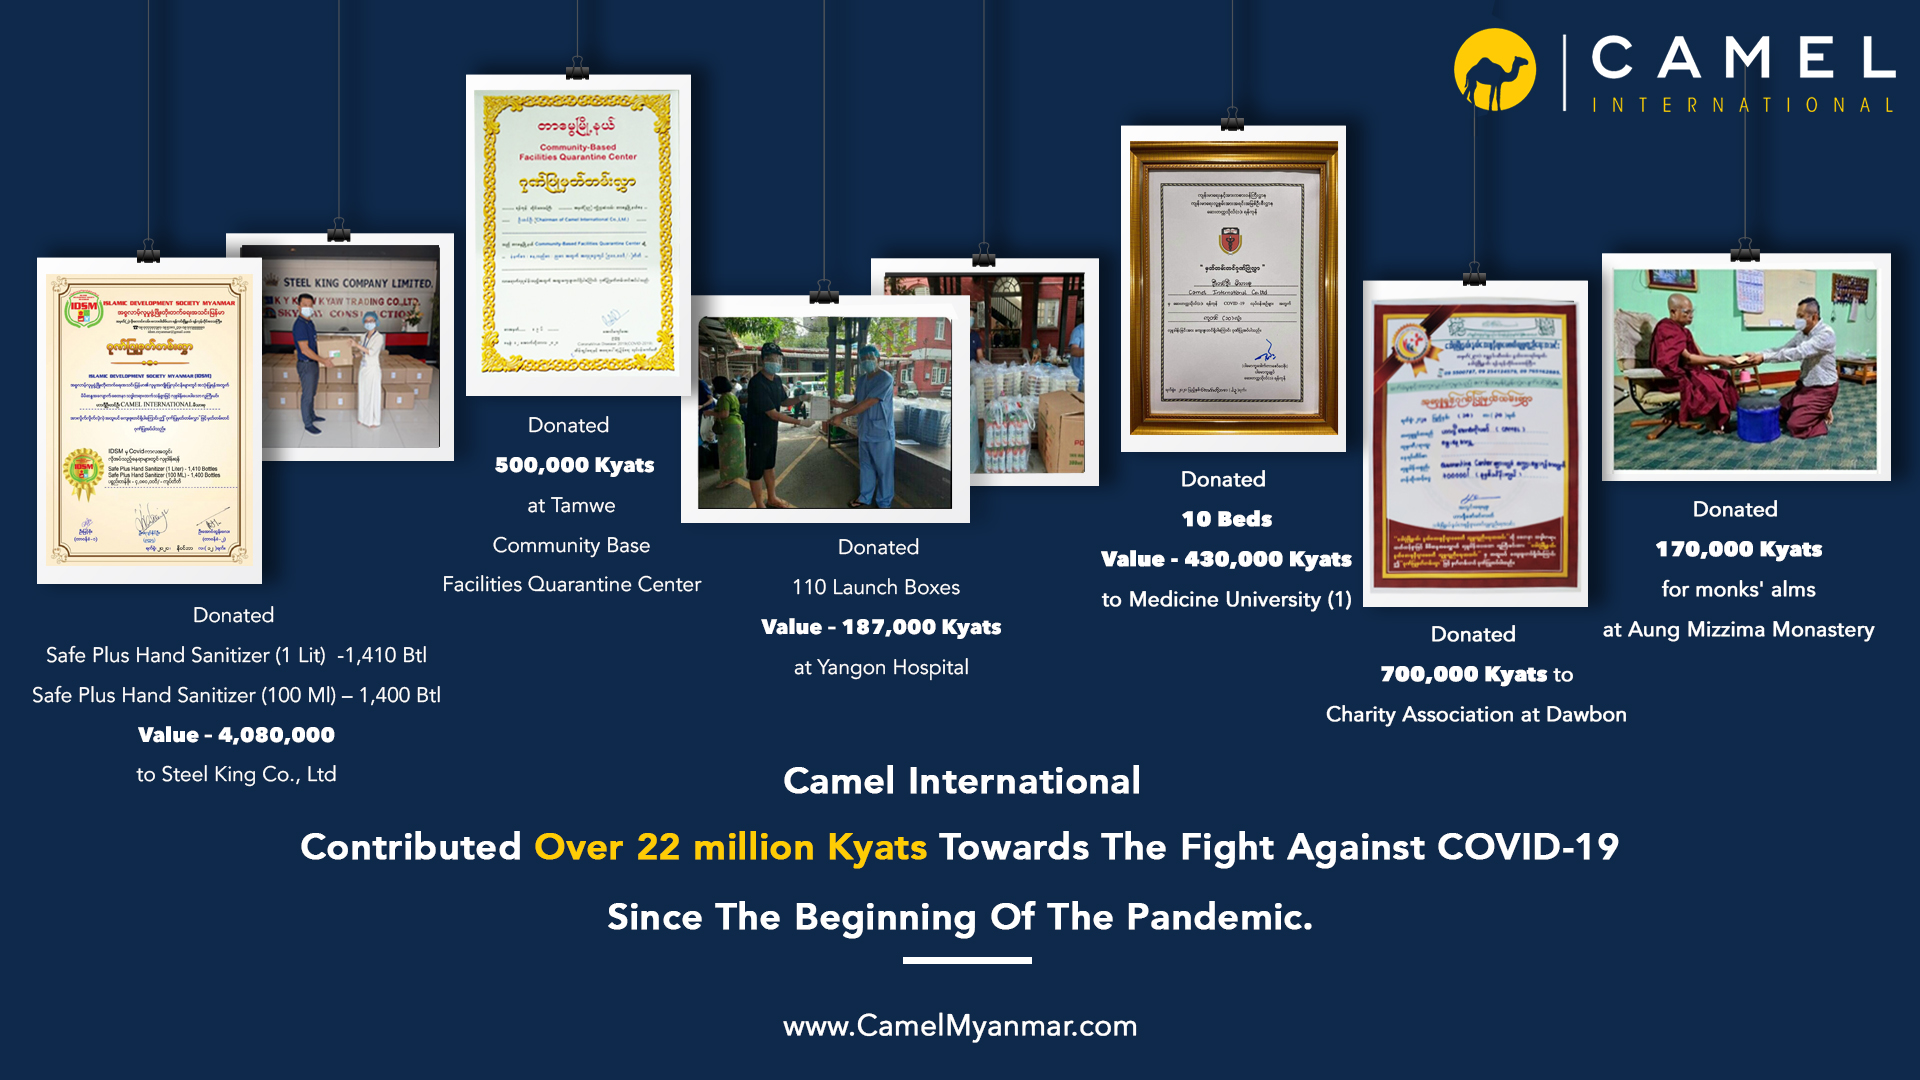 Camel International have contributed over 𝐎𝐯𝐞𝐫 𝟐𝟐 𝐌𝐢𝐥𝐥𝐢𝐨𝐧 Kyats towards the fight against the virus.